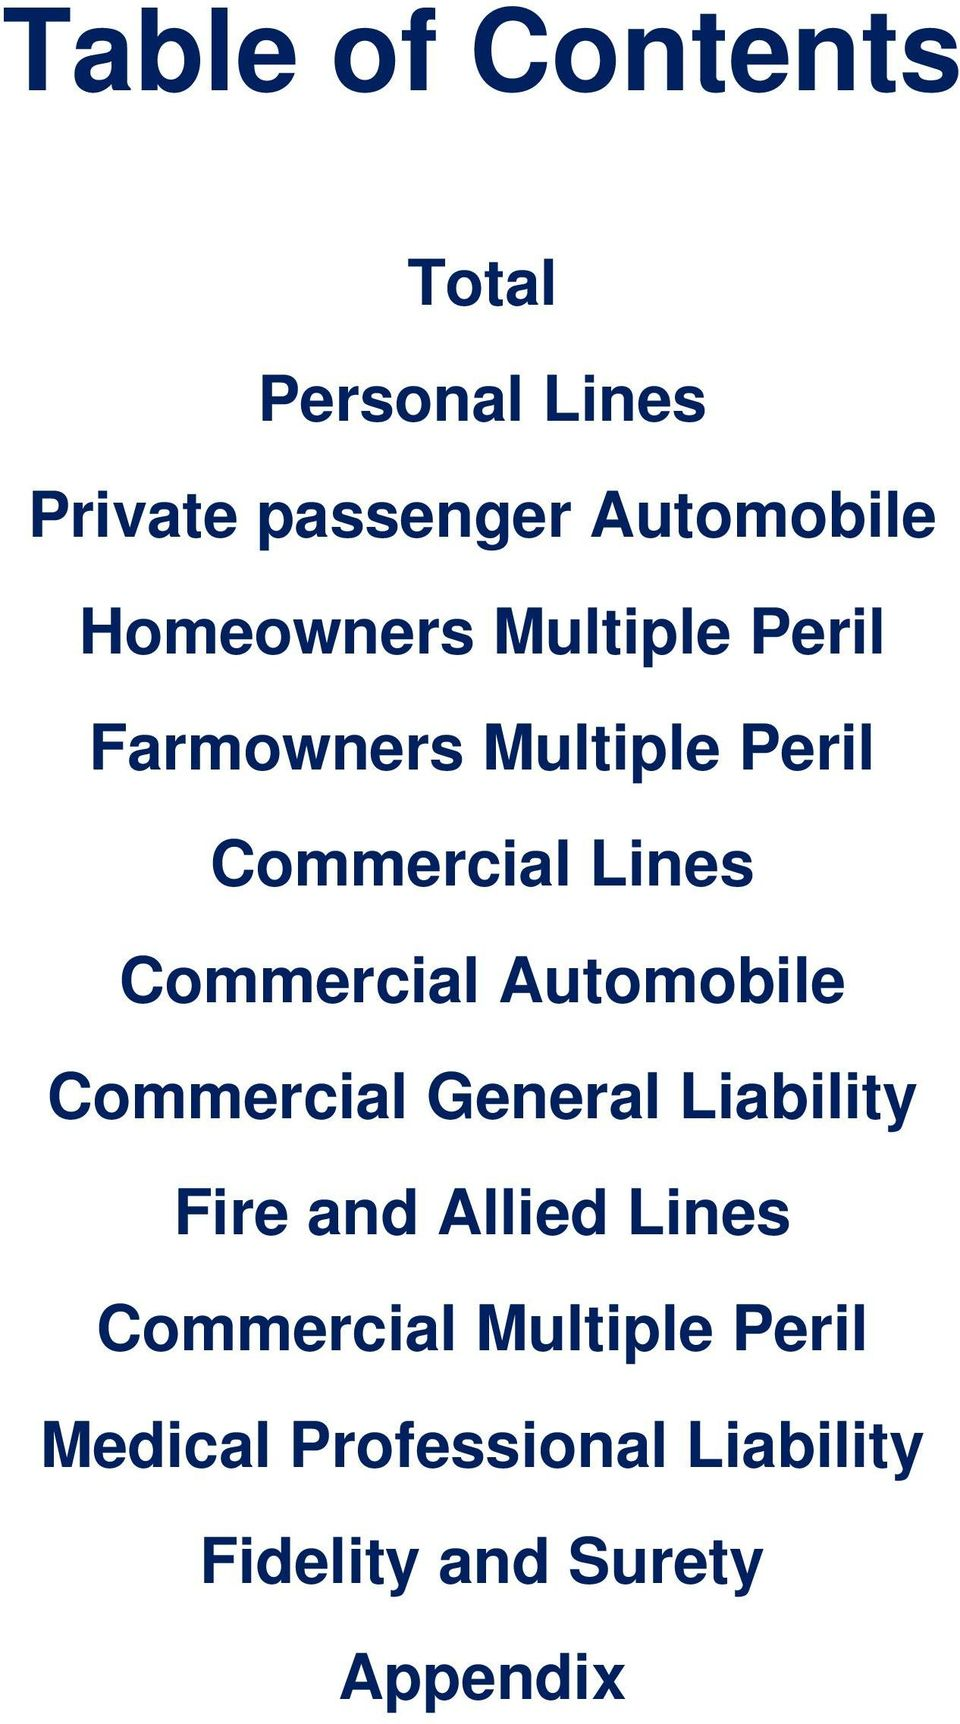 Commercial Automobile Commercial General Liability Fire and Allied Lines